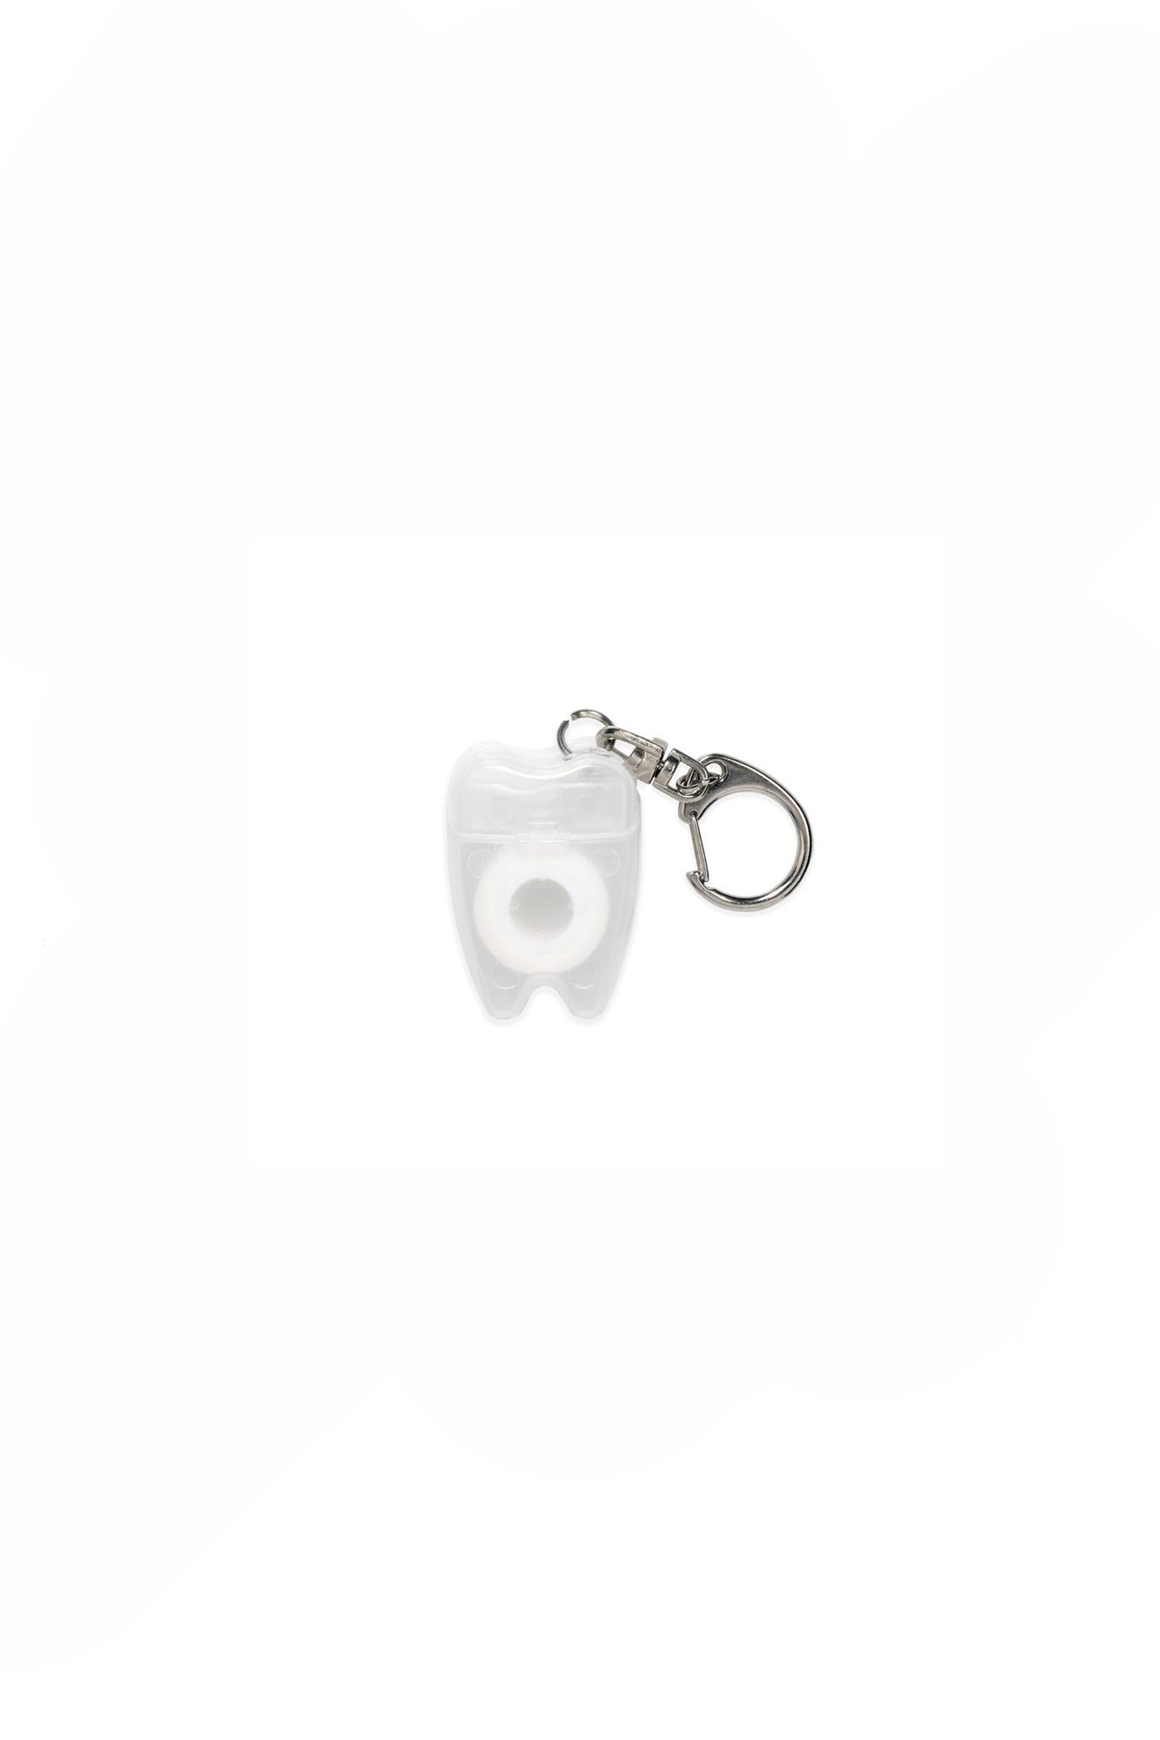 Tooth Floss Keychain - Philistine